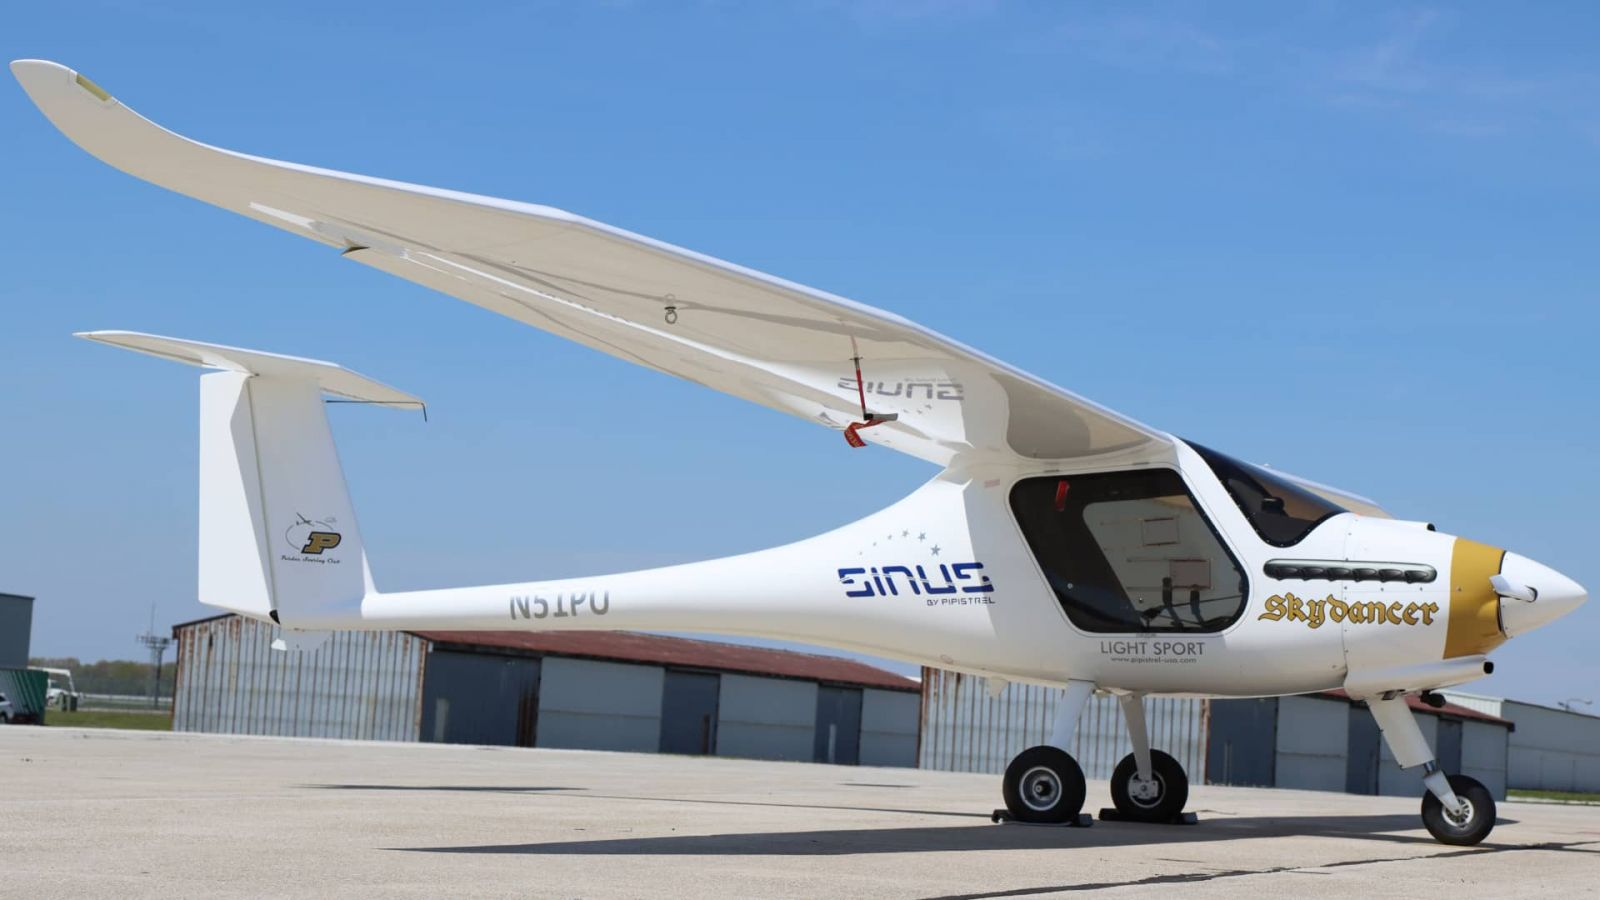 This Pipistrel aircraft at the Purdue University Airport can be modified for use in the Able Flight program, providing flight training to would-be pilots with disabilities.